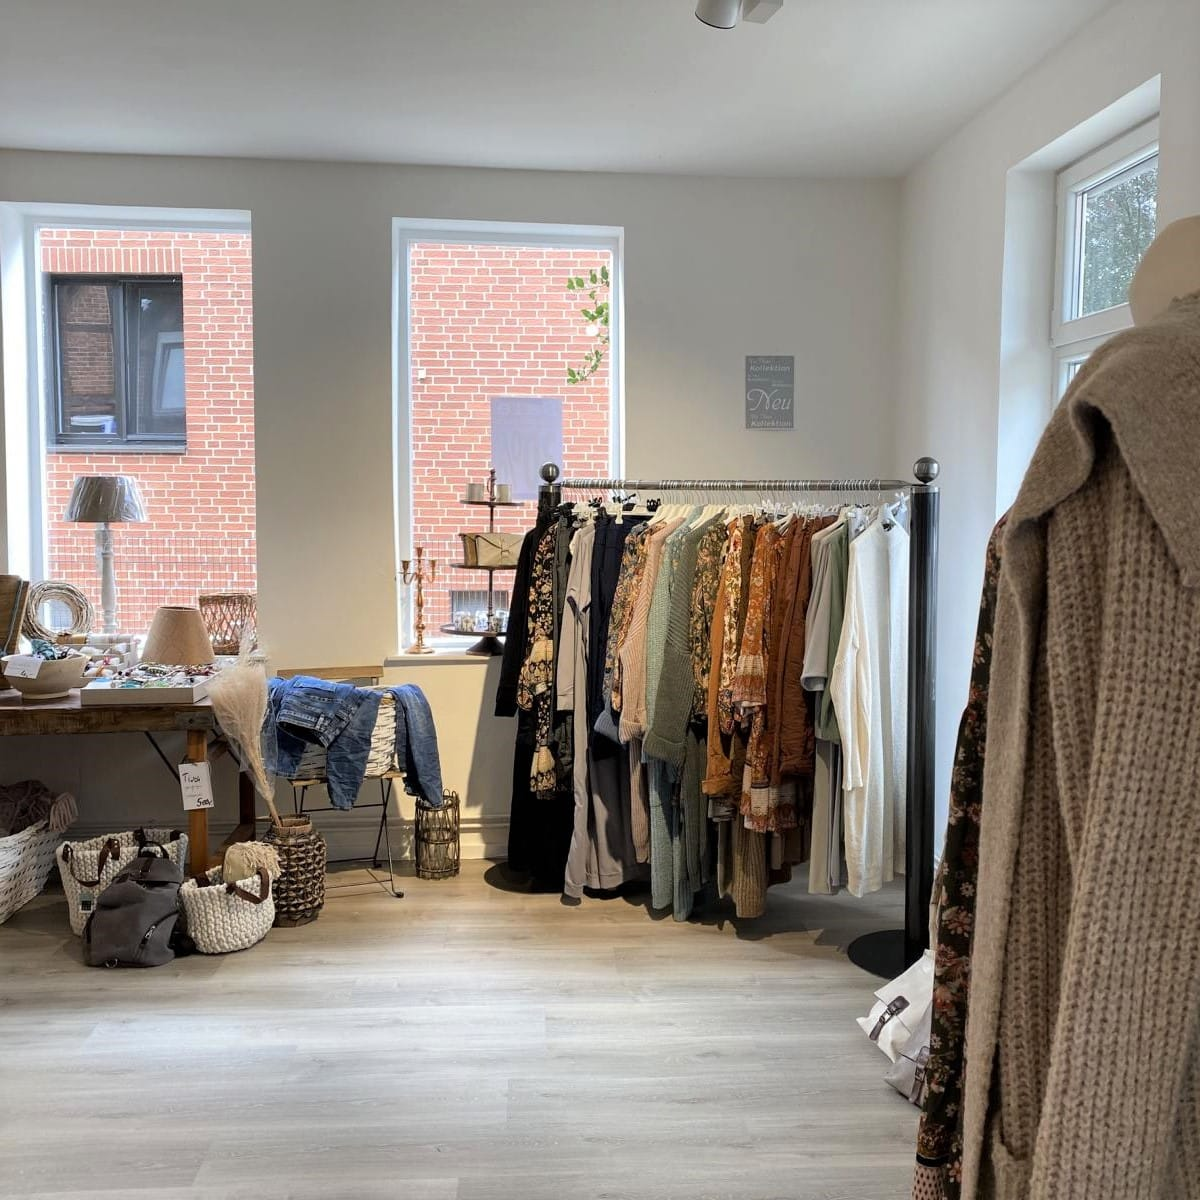 style hannover roots hannover 15 - Roots – Fashion, Wohnen, Accessoires